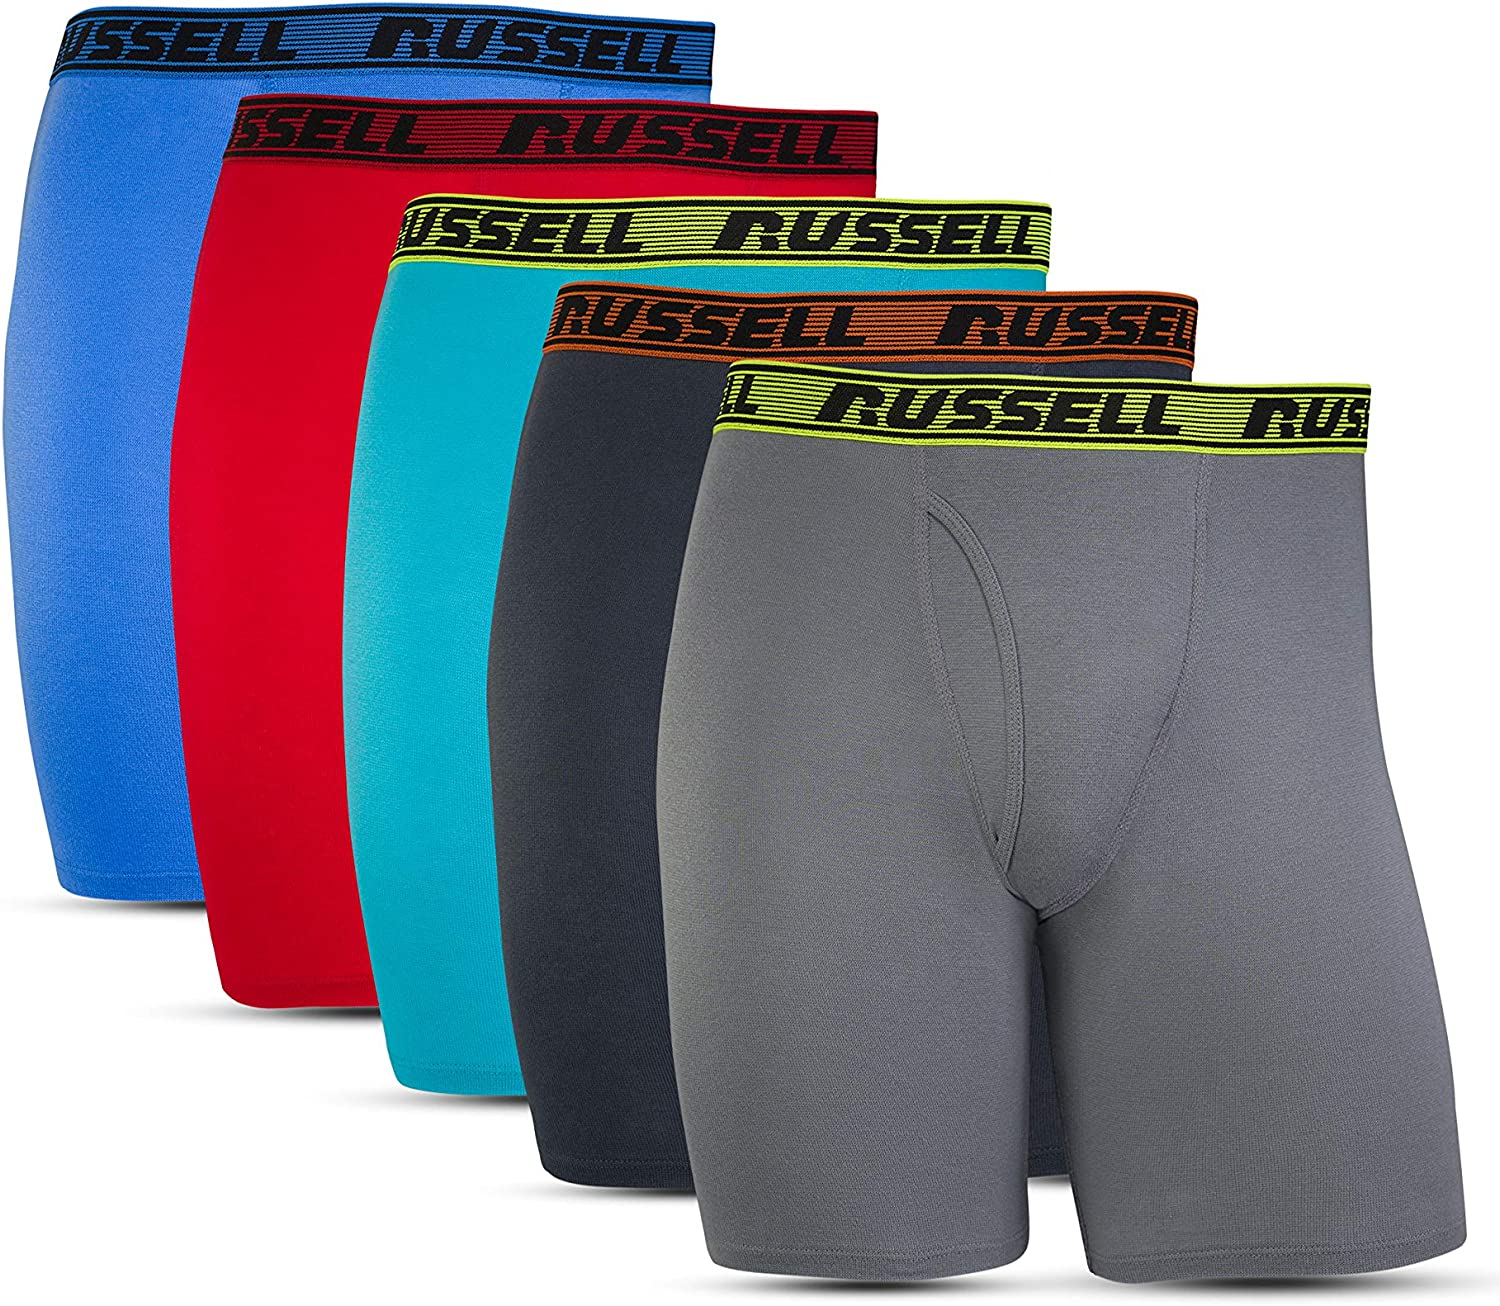 Russell Athletic Men's All Day Comfort Boxer Briefs (5 Pack)